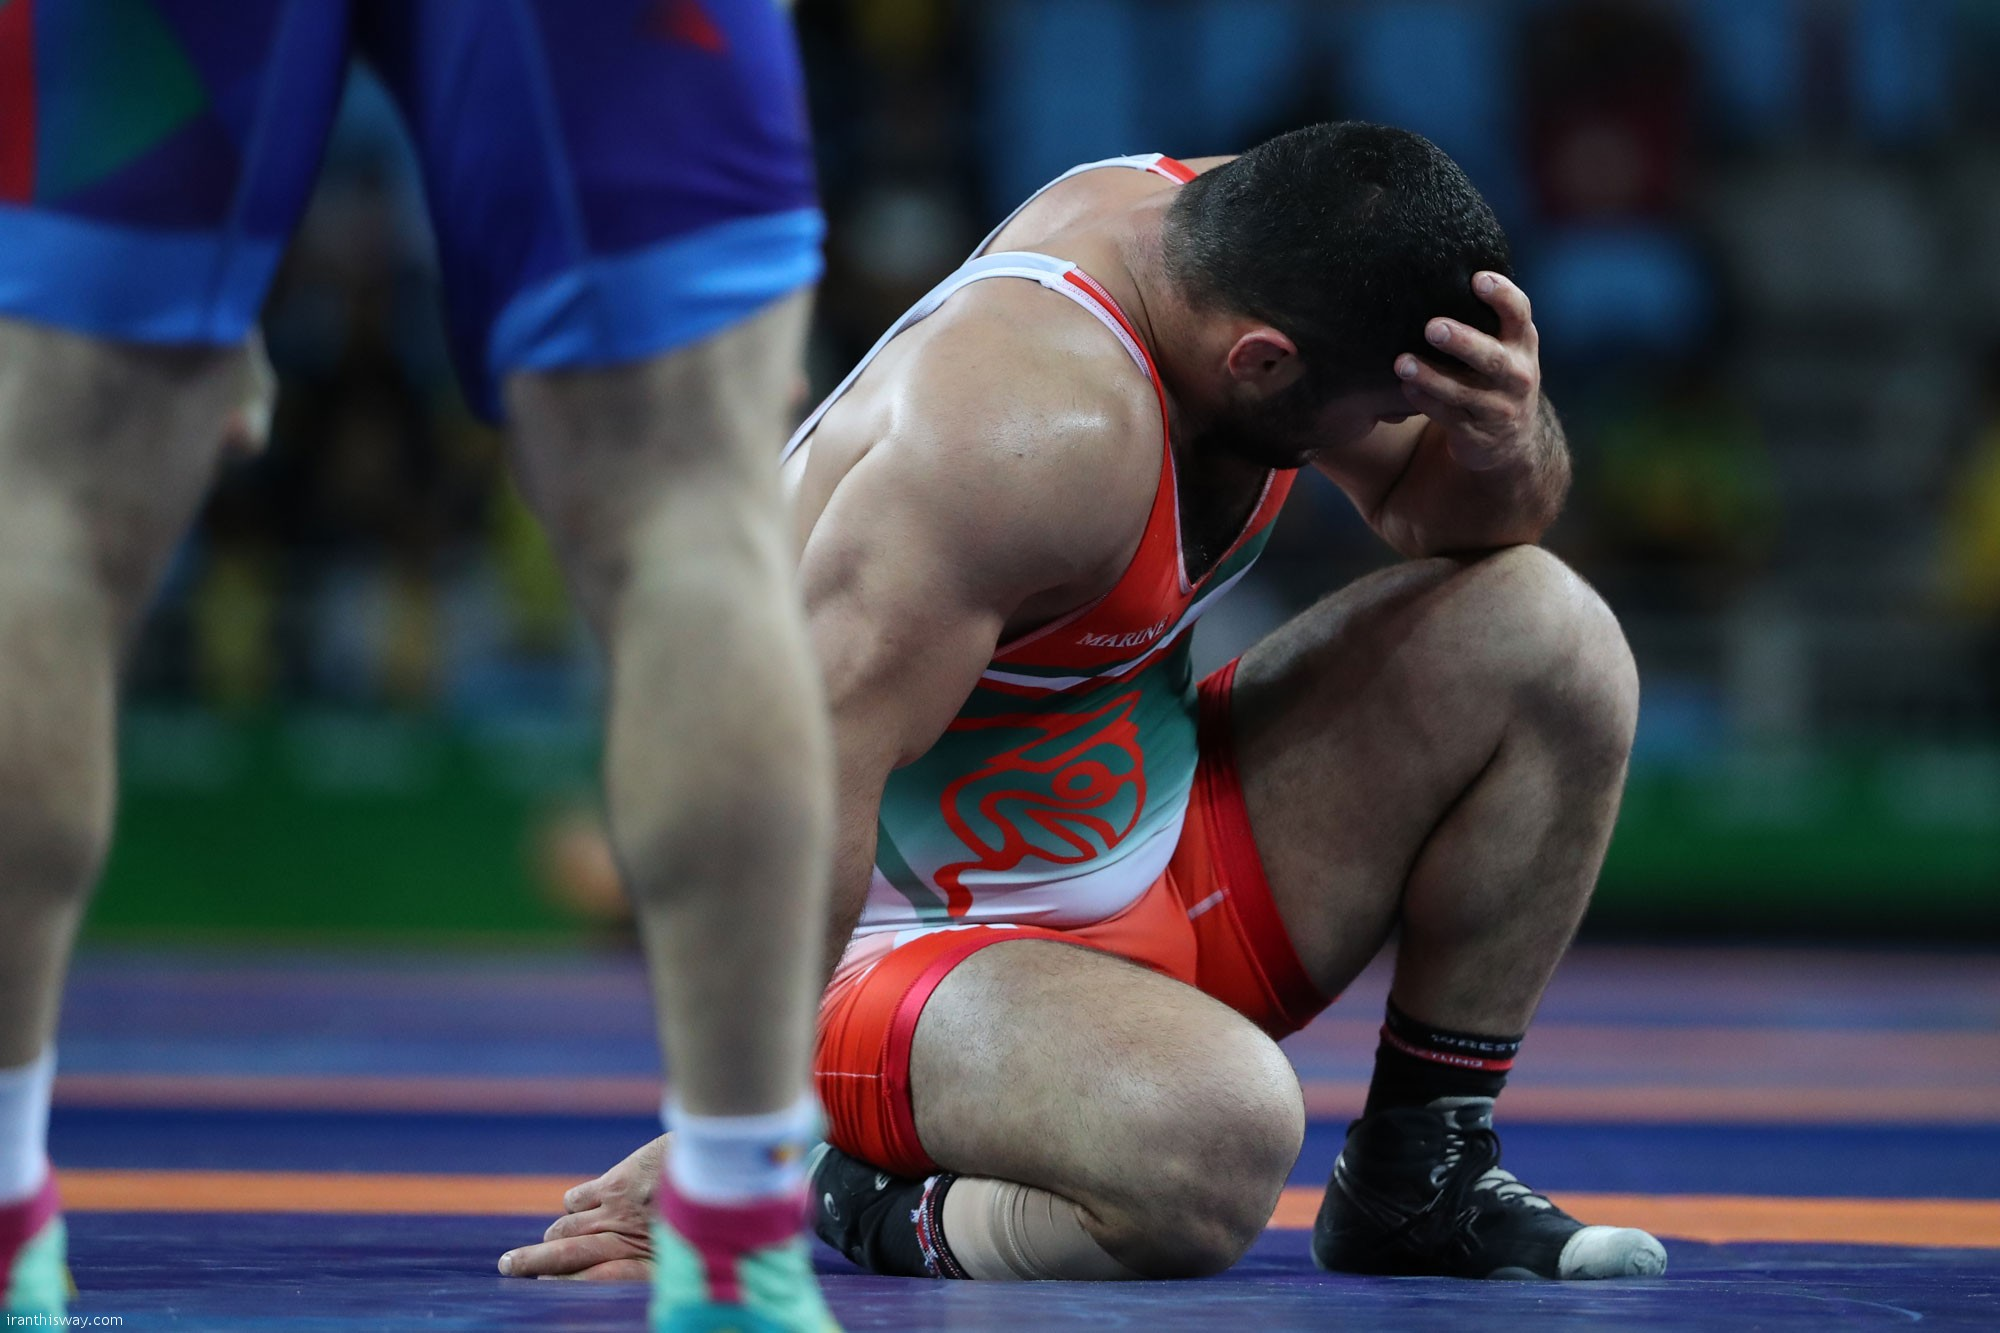 Iran's freestylers hopeful for a bronze in last minutes /Video+Photo